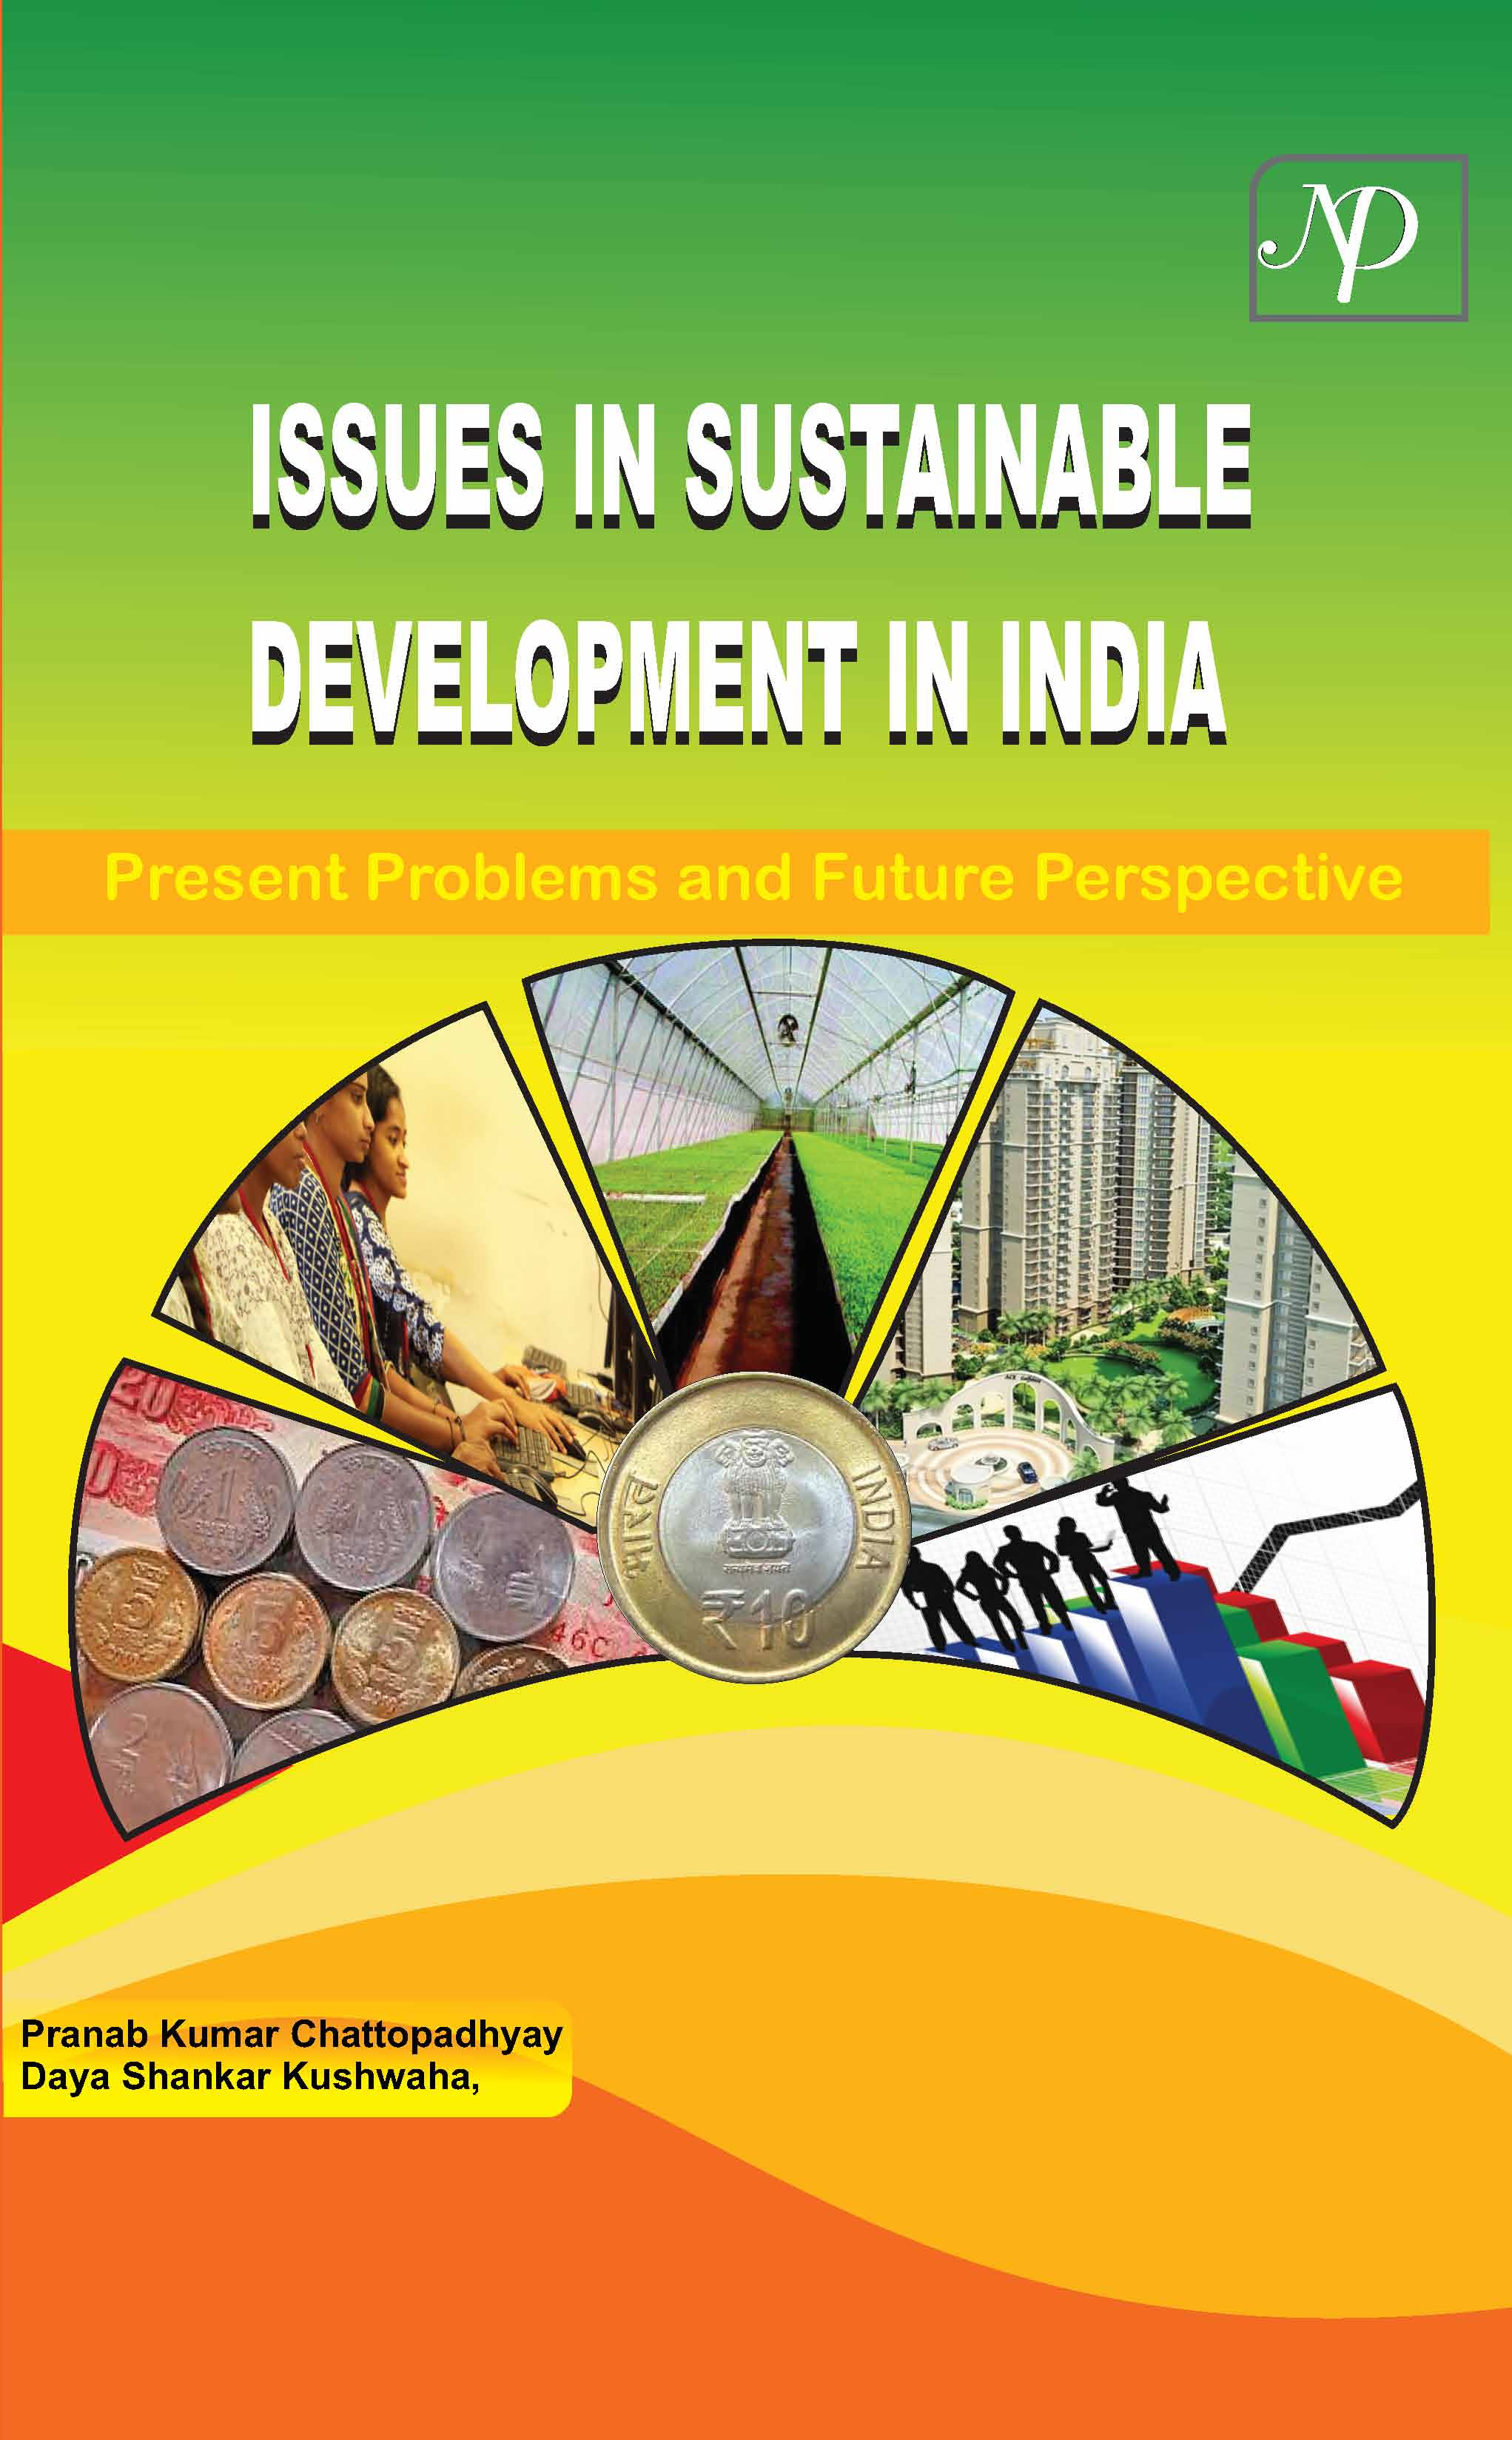 issues in sustainable development in india HB cover.jpg